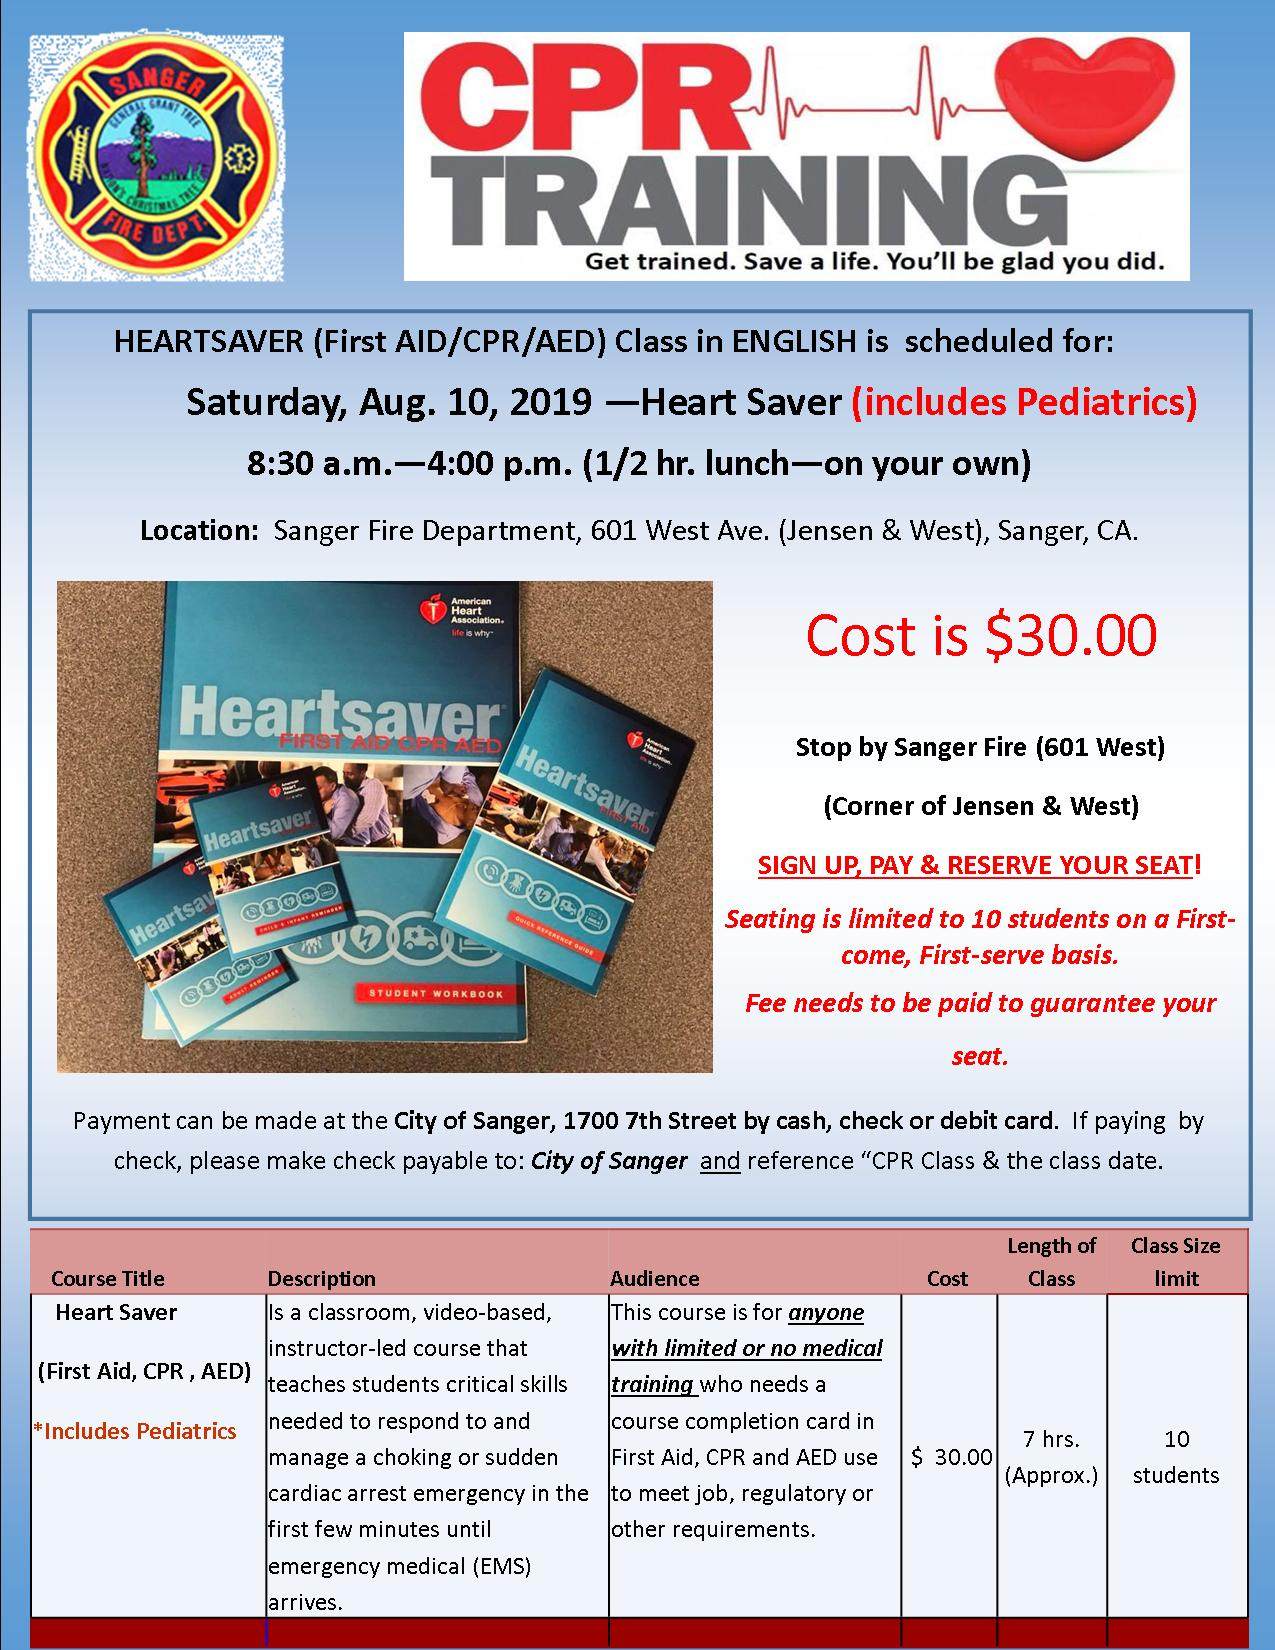 Upcoming CPR class Aug 10, 2019